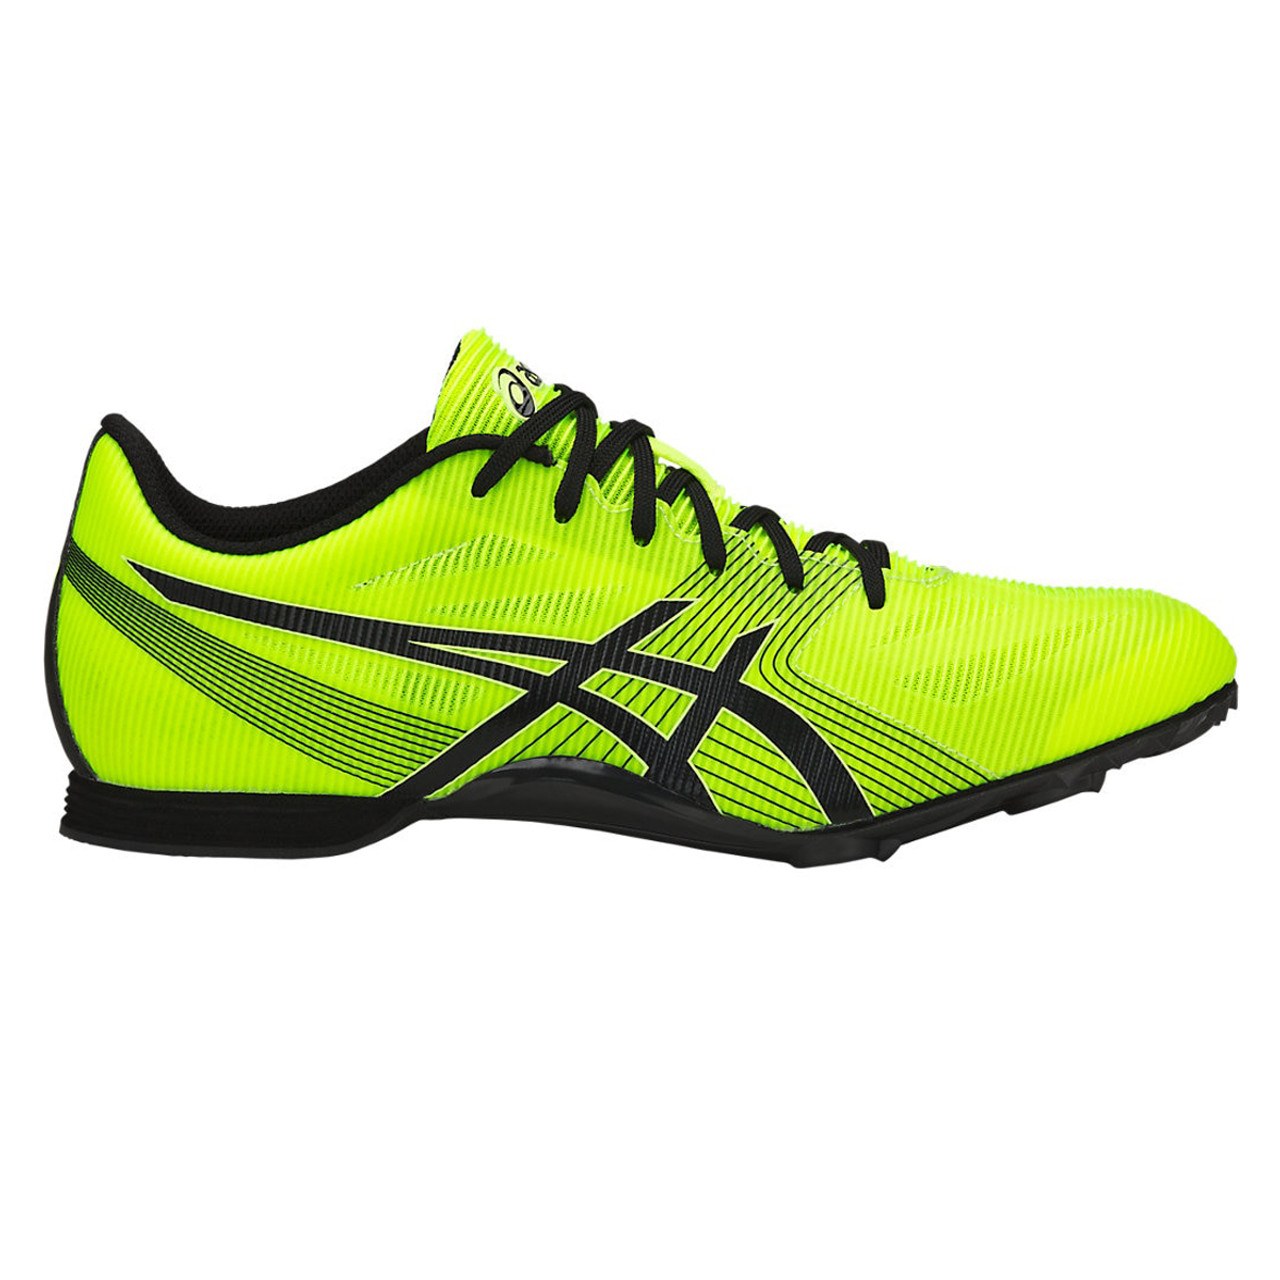 34e497ed3d0e Asics Hyper MD 6 Men s Track and Field Shoes - Yellow